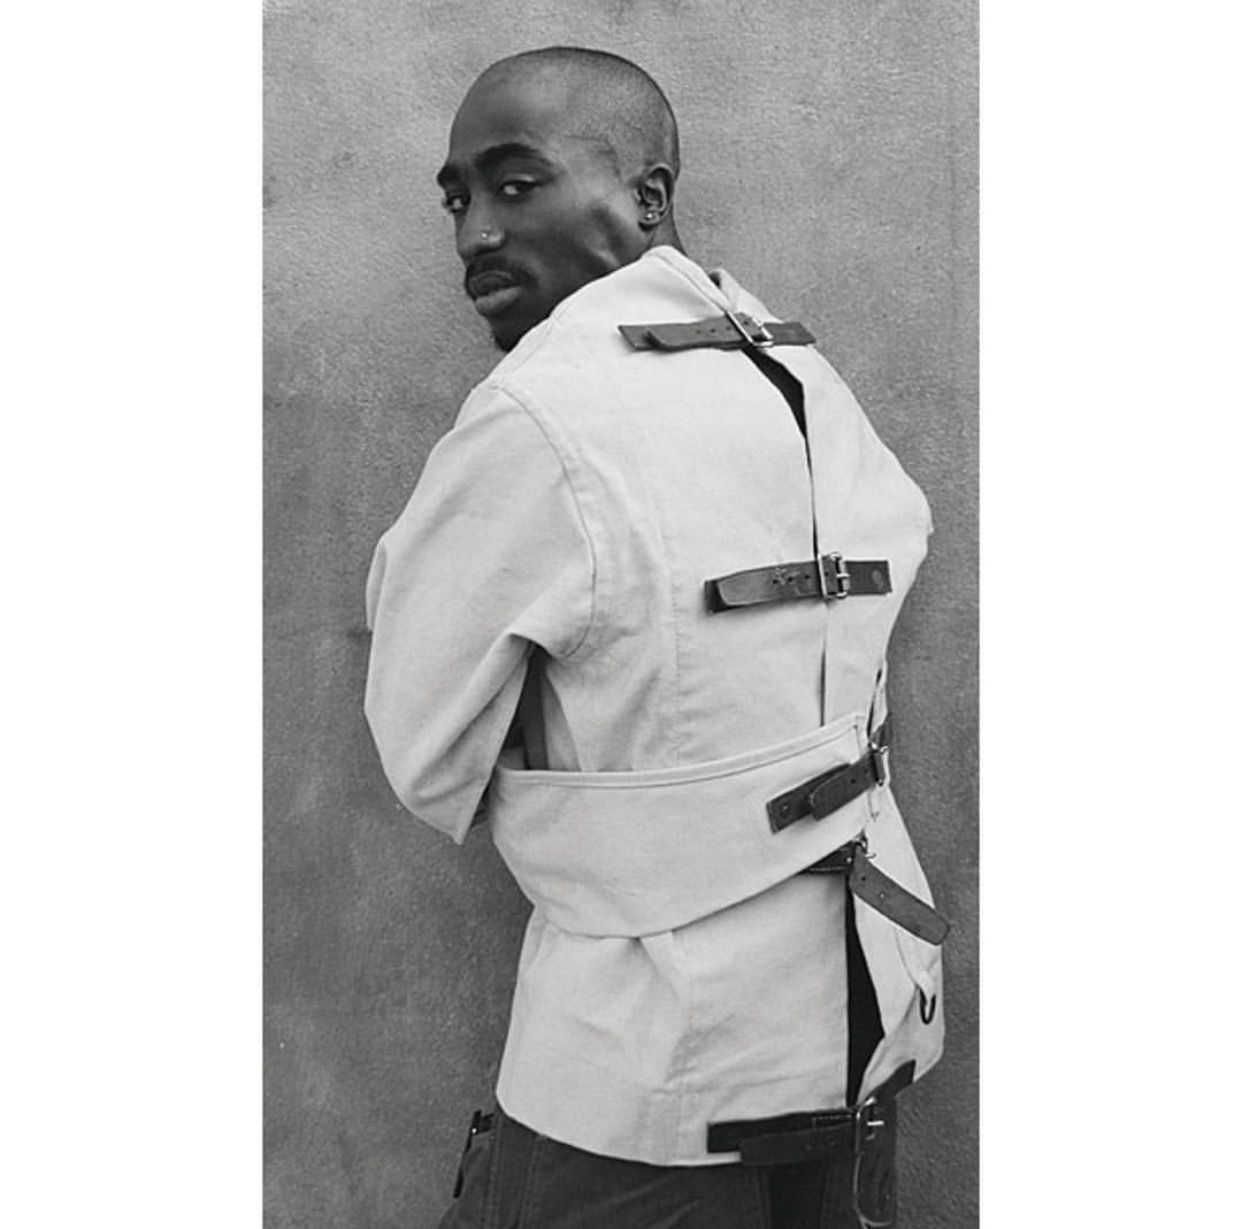 Pin by SWAVEŸ on TUPAC SHAKUR Tupac shakur, Tupac